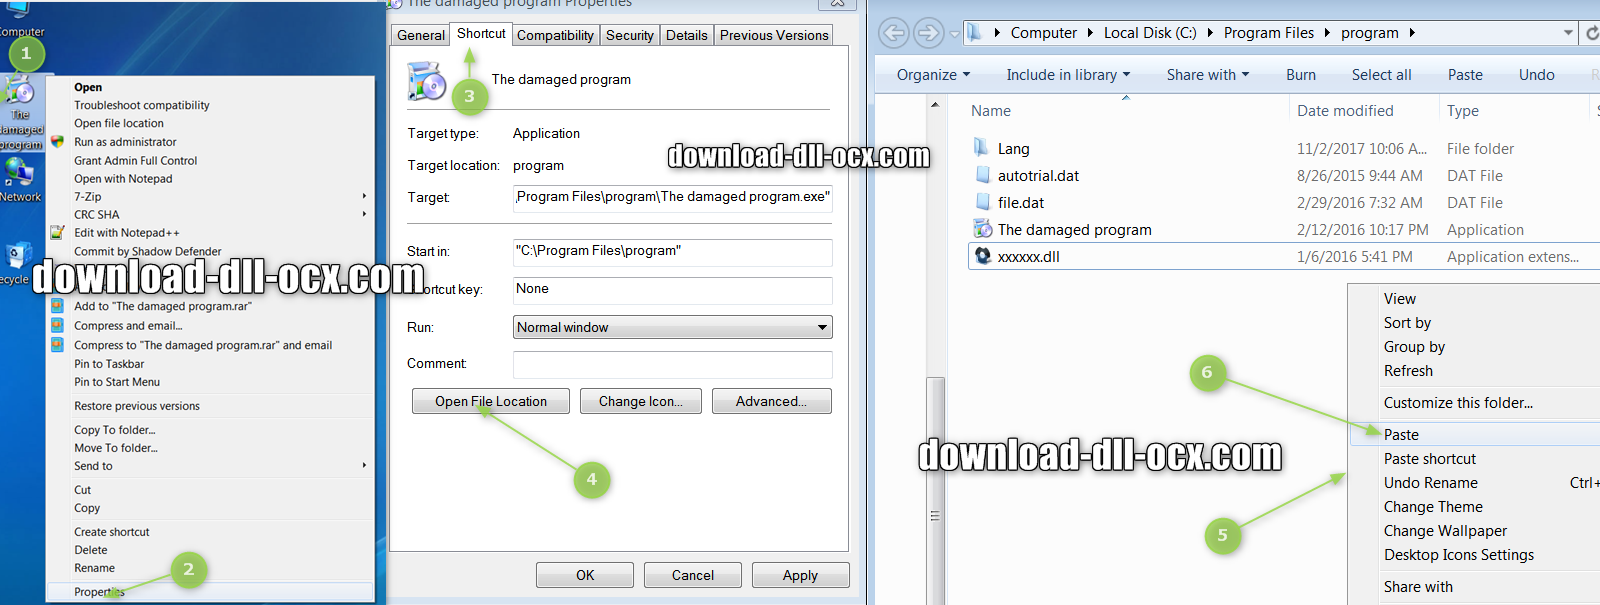 how to install jgadgen.dll file? for fix missing